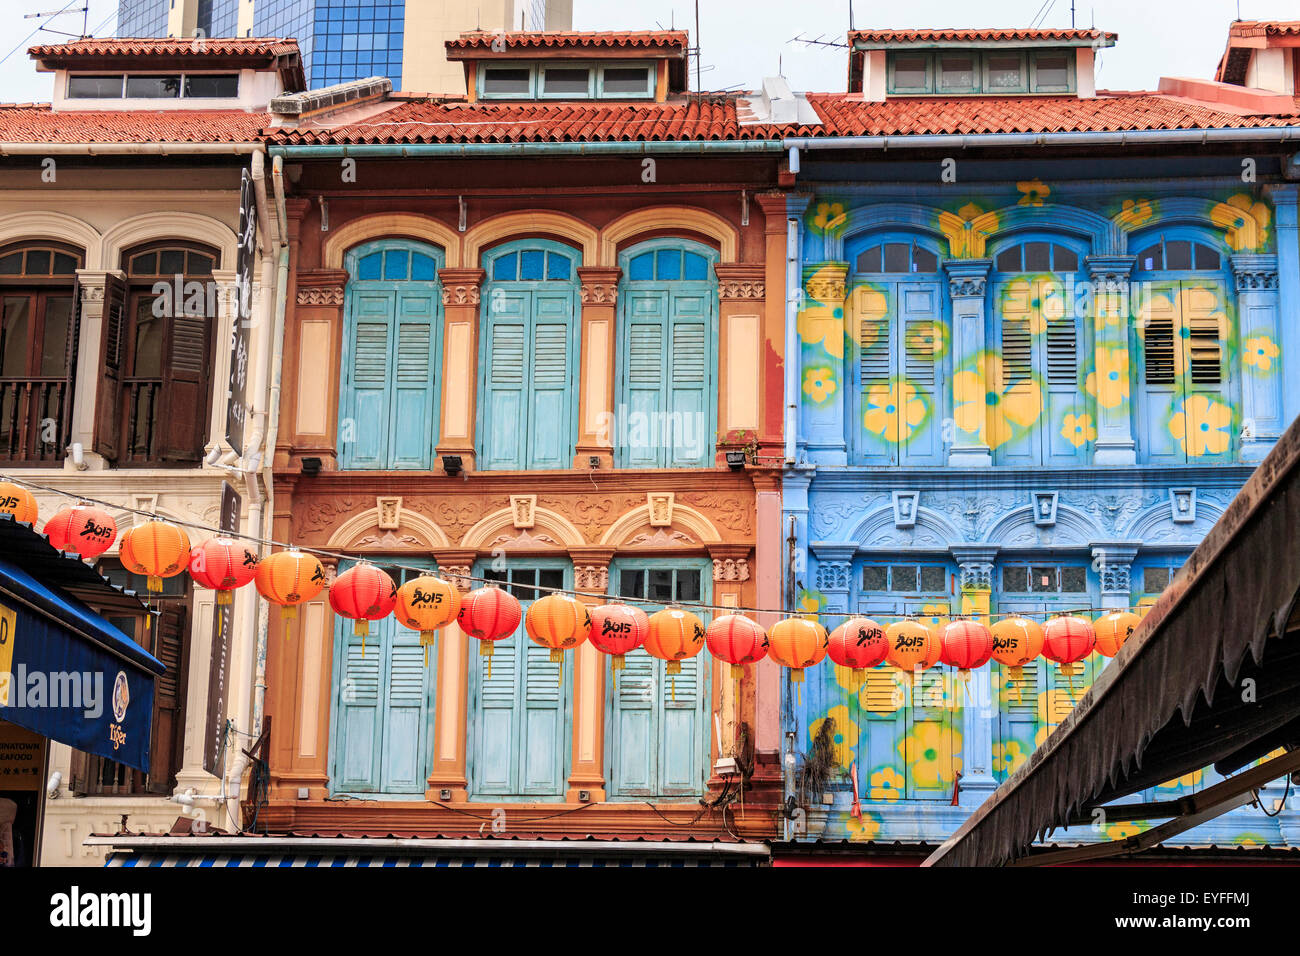 Shophouse Stock Photos & Shophouse Stock Images - Alamy